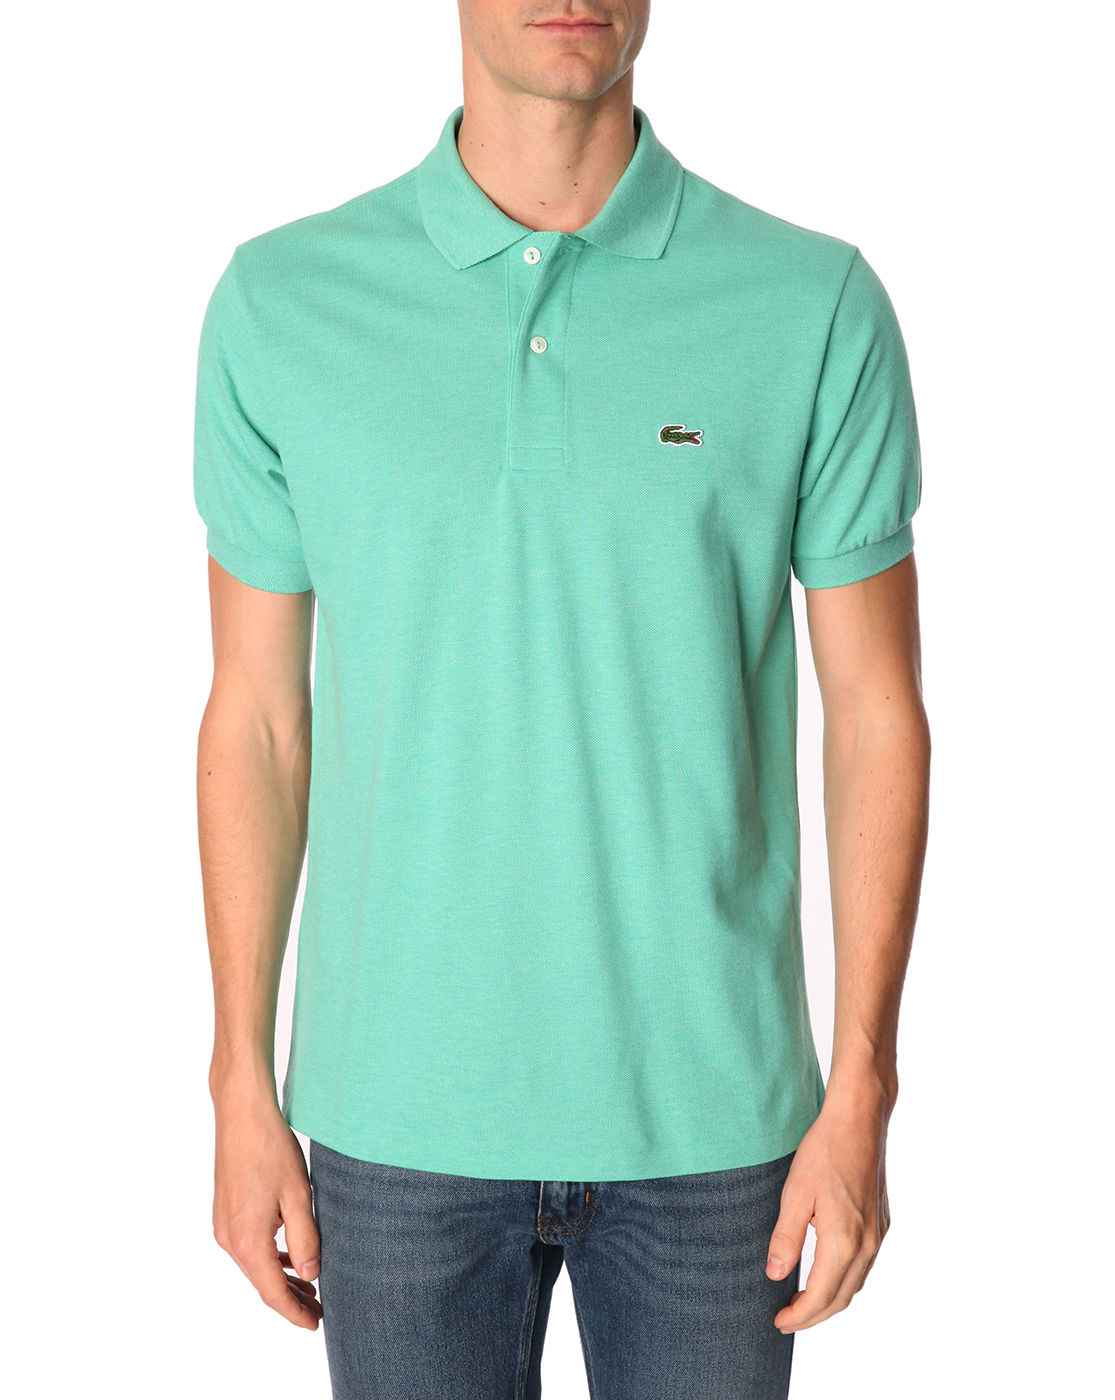 Lacoste l1212 short sleeve heather mint green polo in for Mint color polo shirt